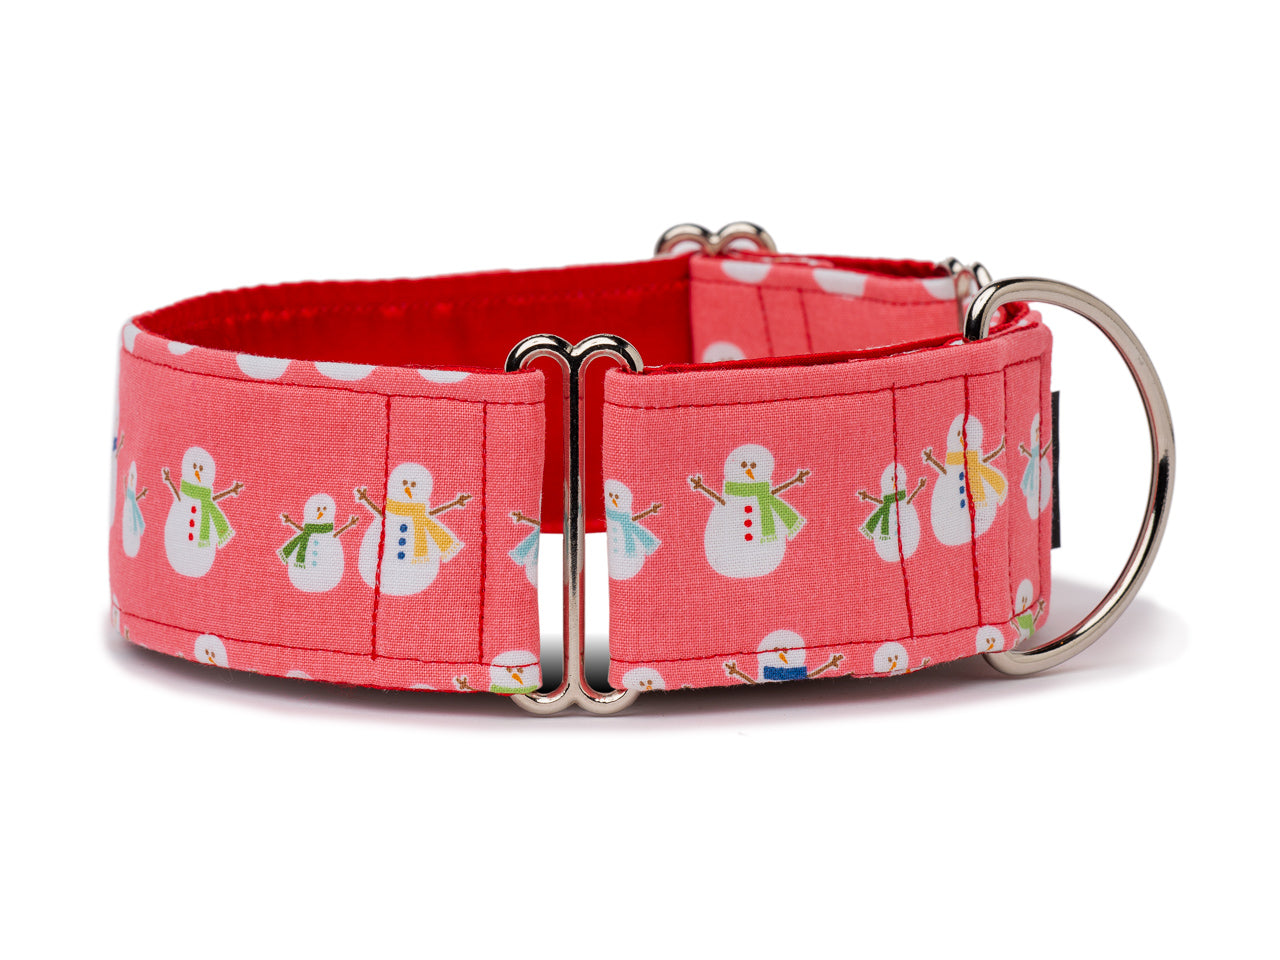 If your pooch likes to play in the snow, the festive snowmen on this cheerful red collar are the perfect playmates.